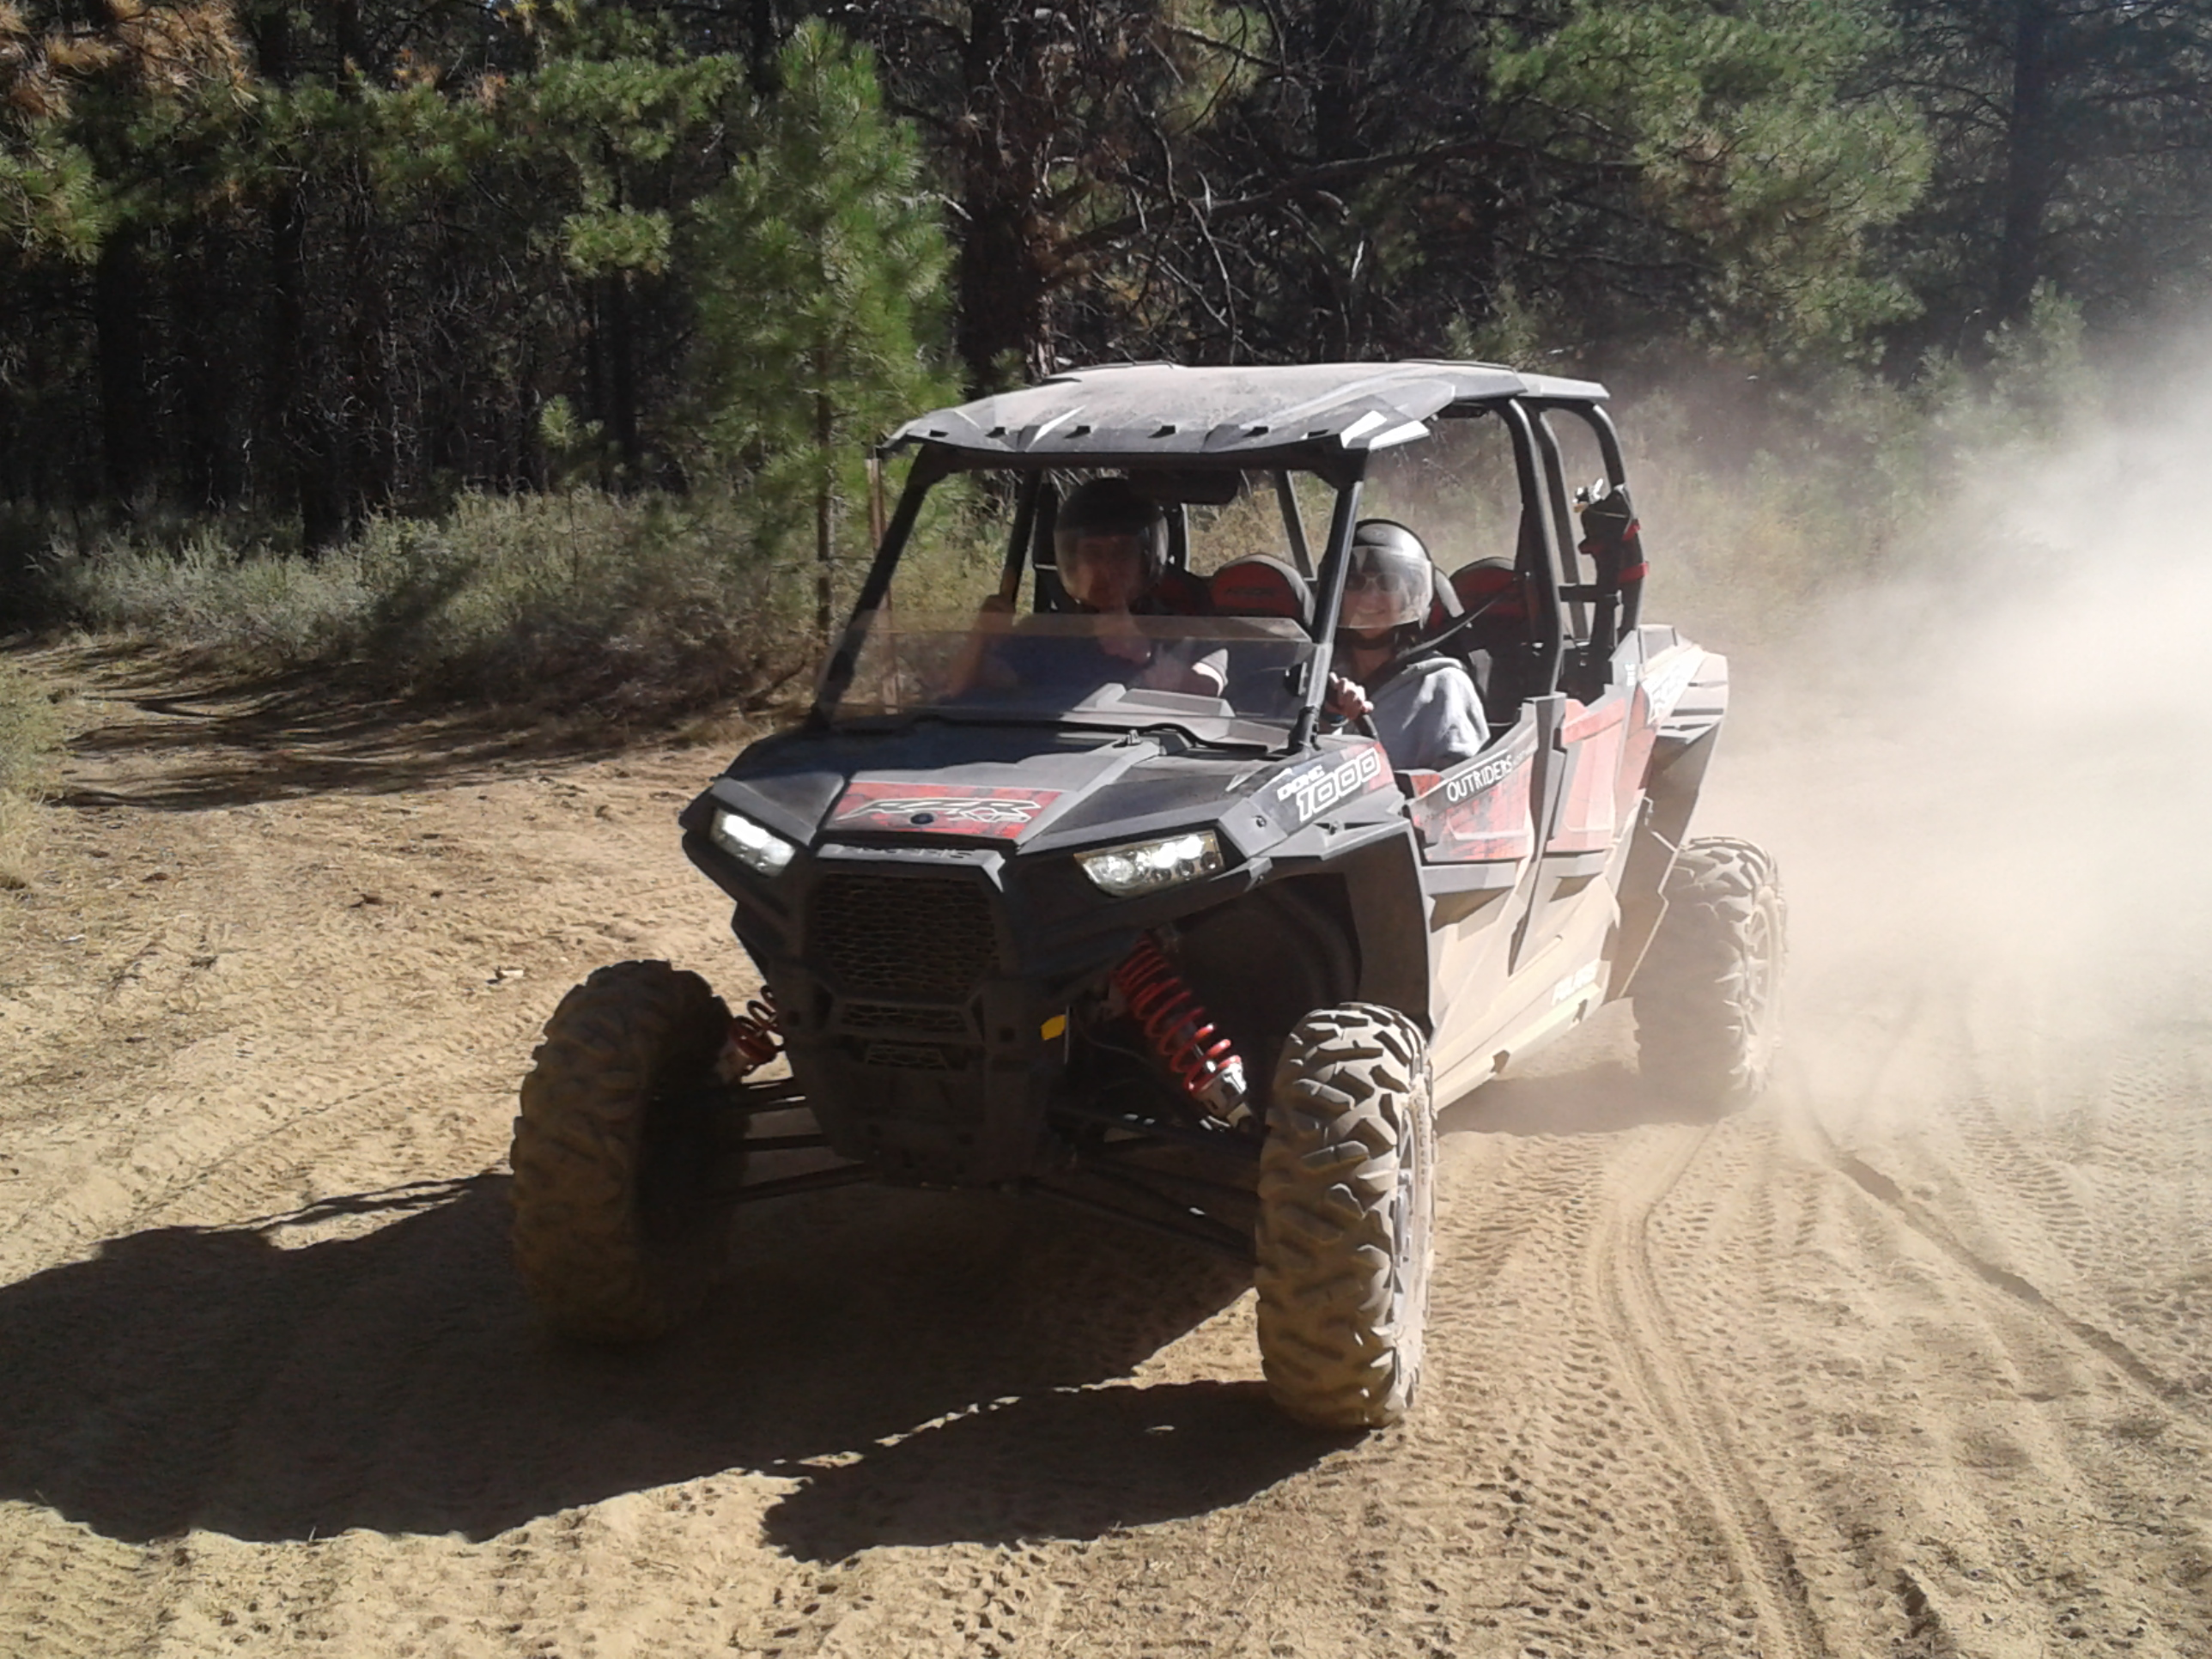 Off Road Tours | Guided You Drive Polaris RZR Side-By-Side ATVs